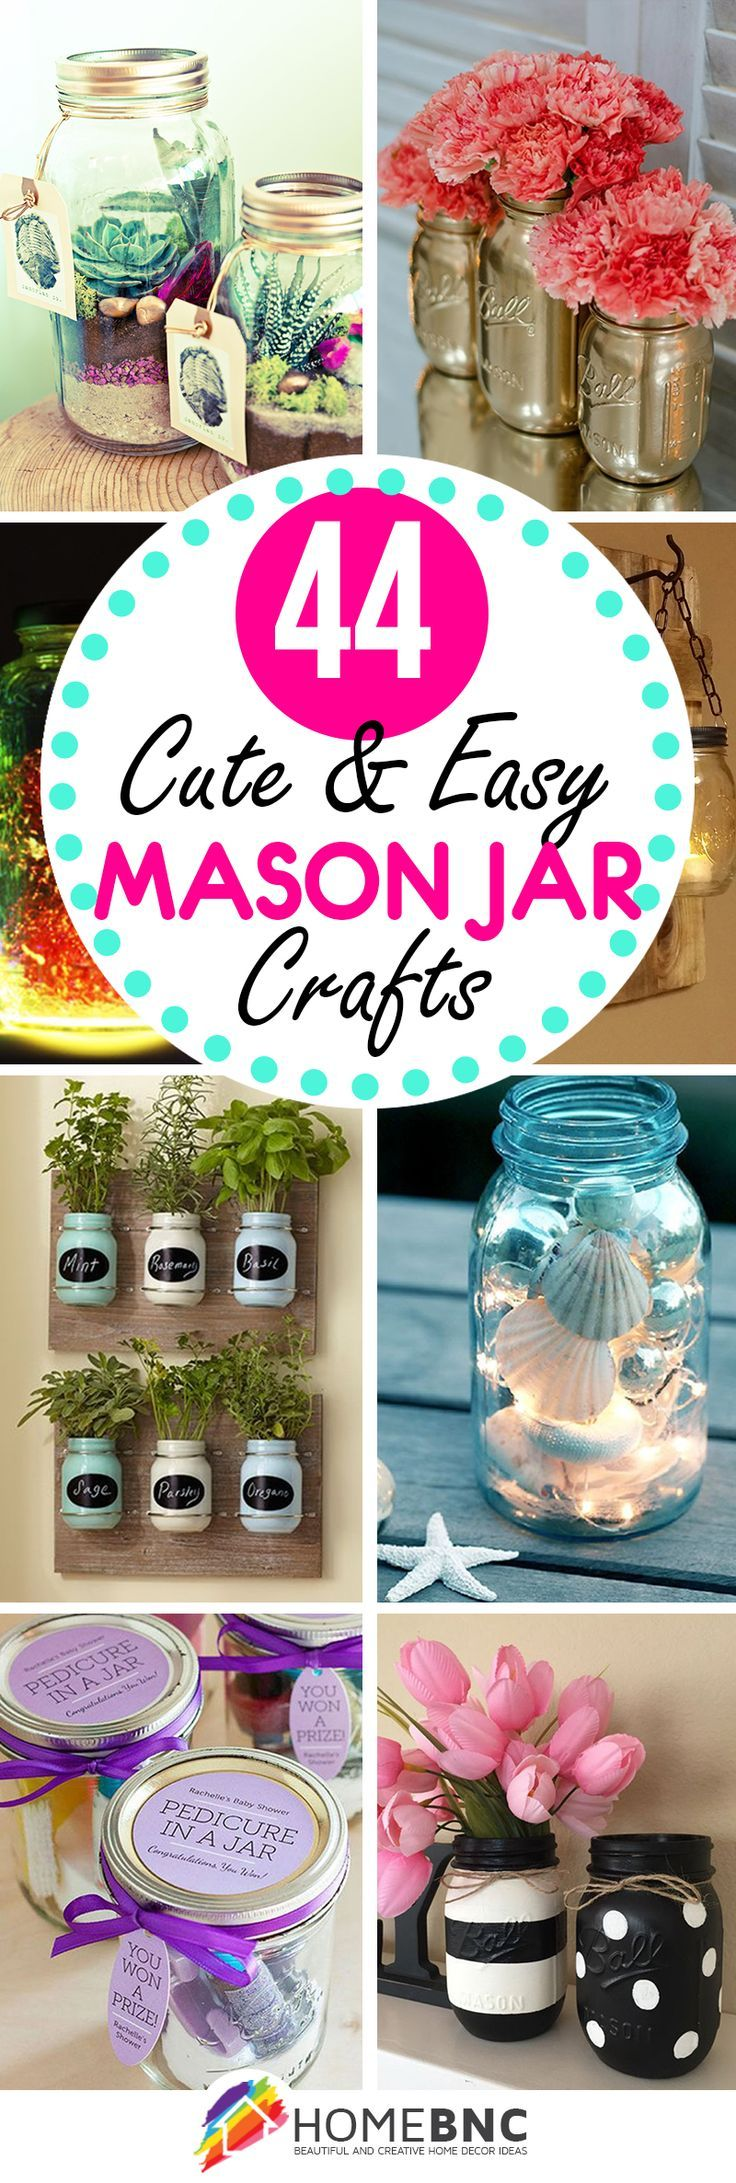 Graduation table decorations homemade - Get Creative With These 44 Diy Mason Jar Crafts